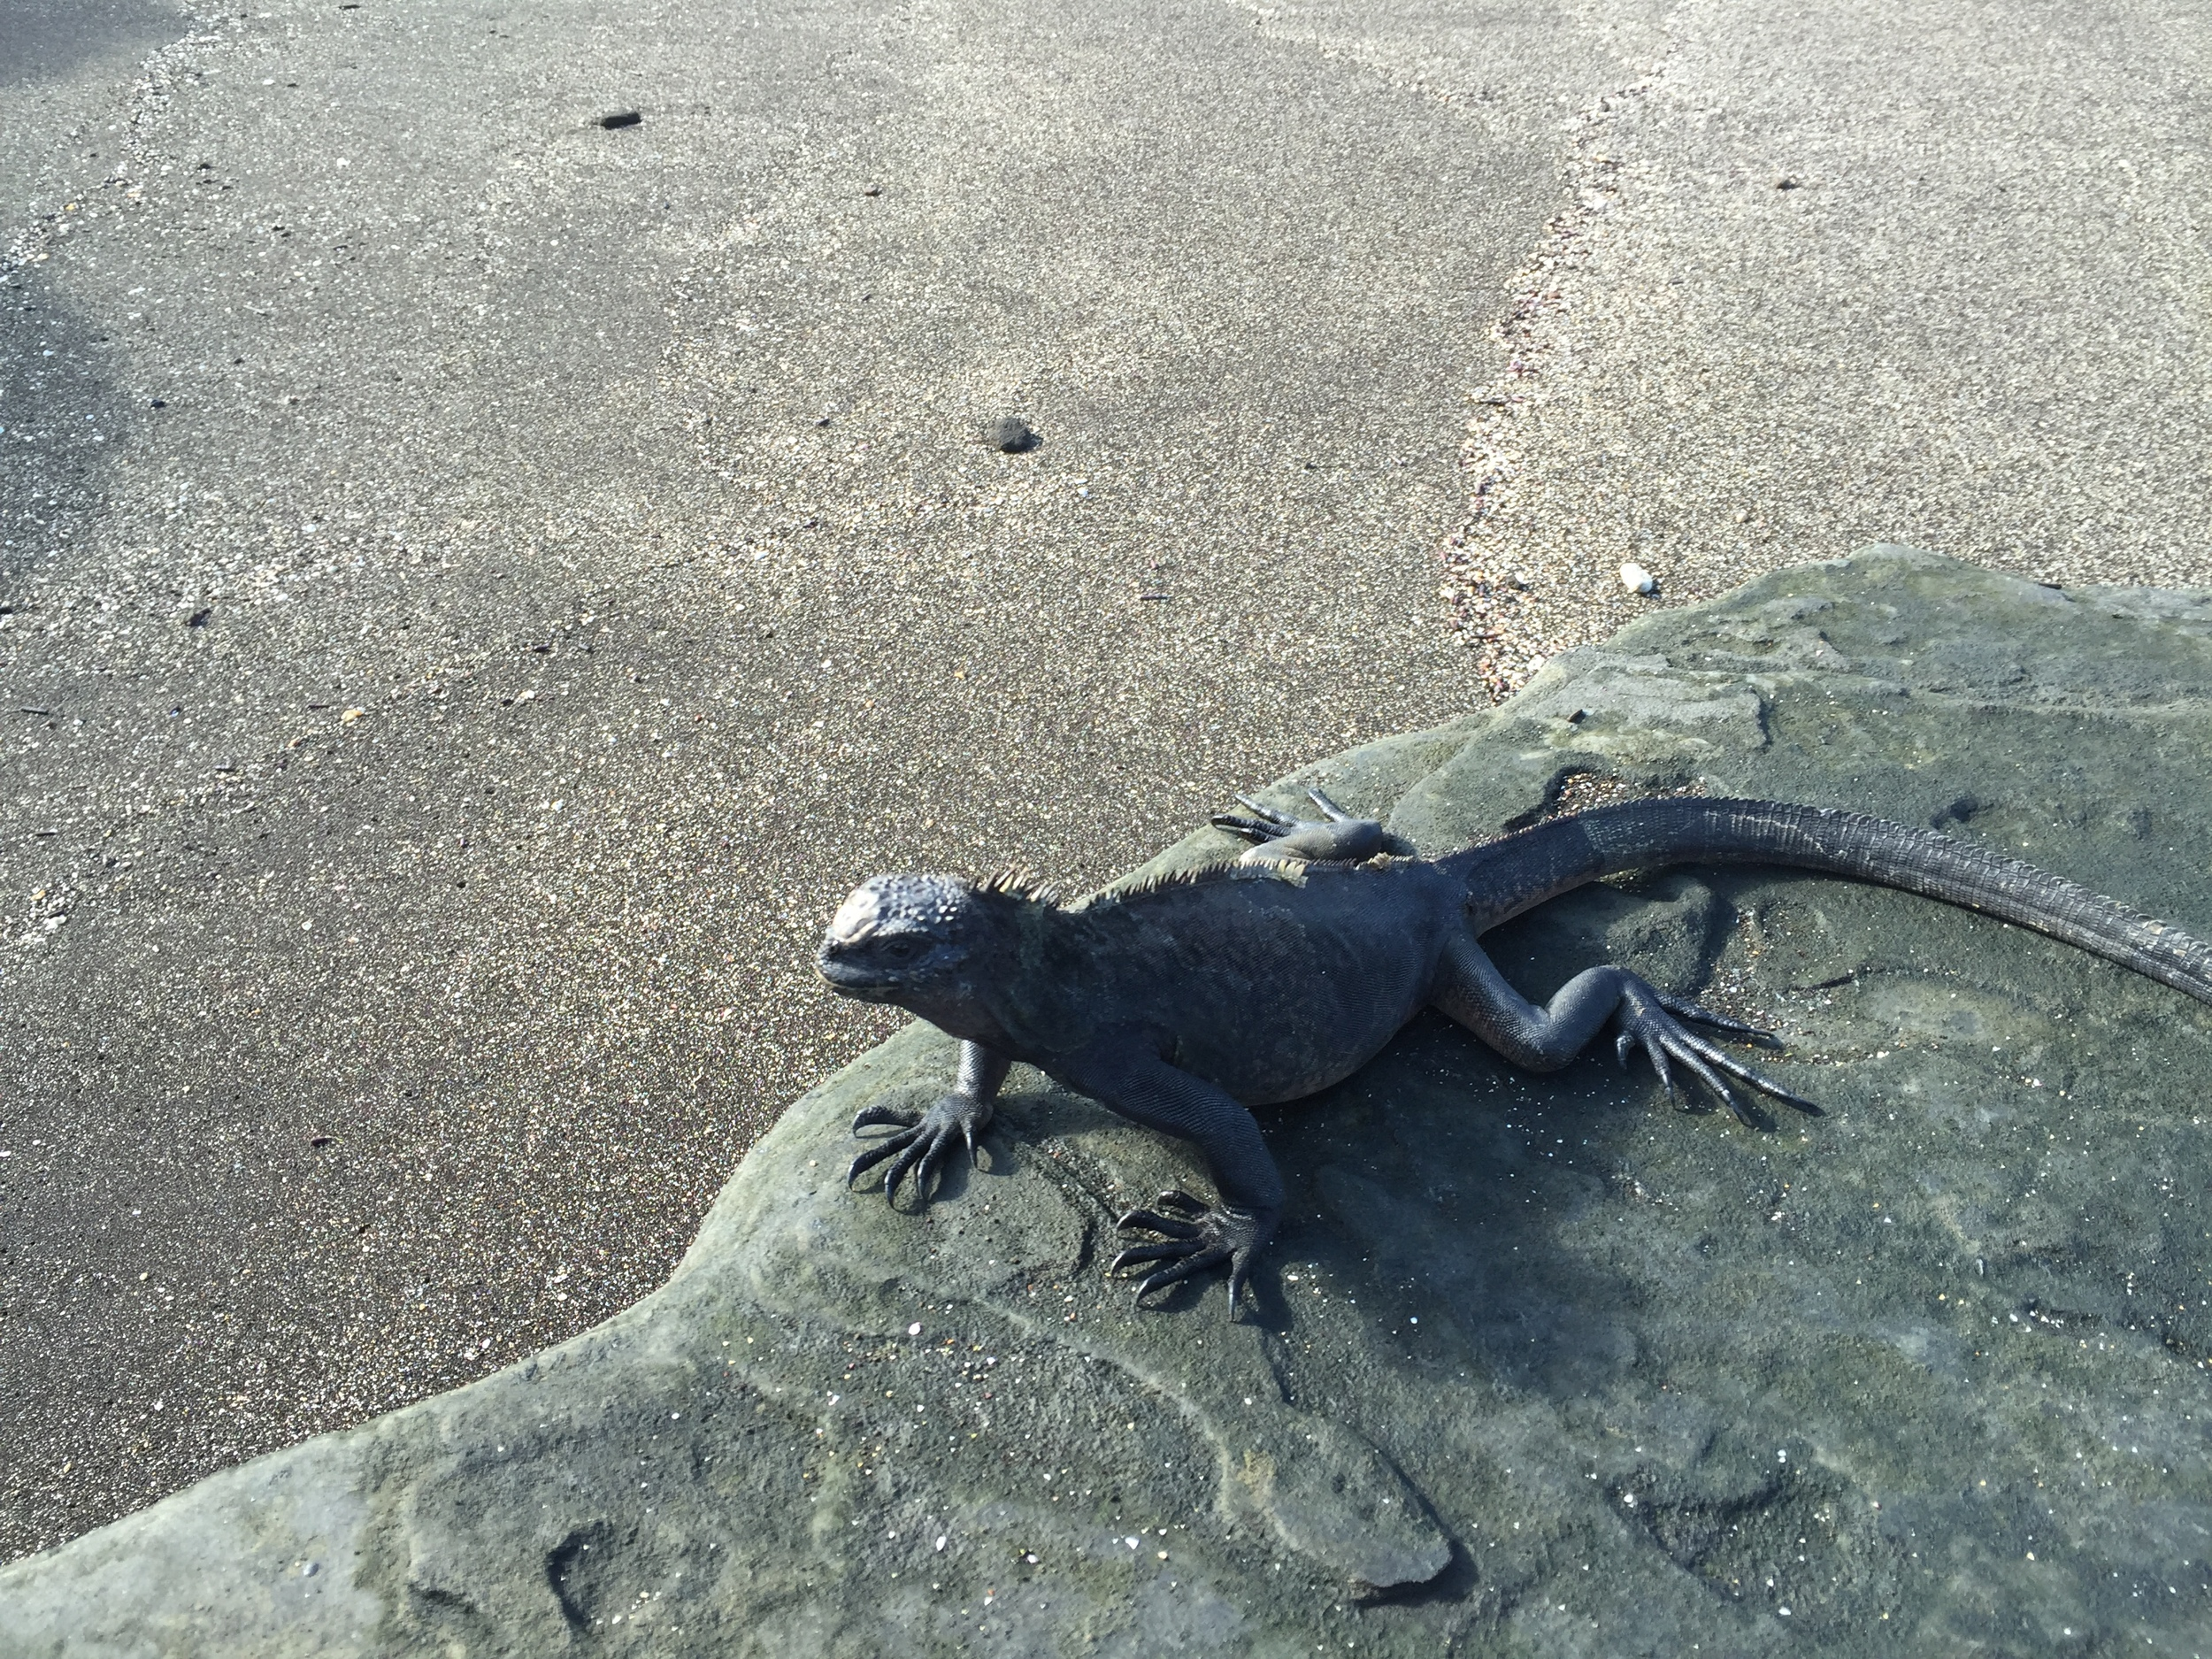 Just one of thousands of marine iguanas basking in the morning sun on the beach at isla Fernandina.